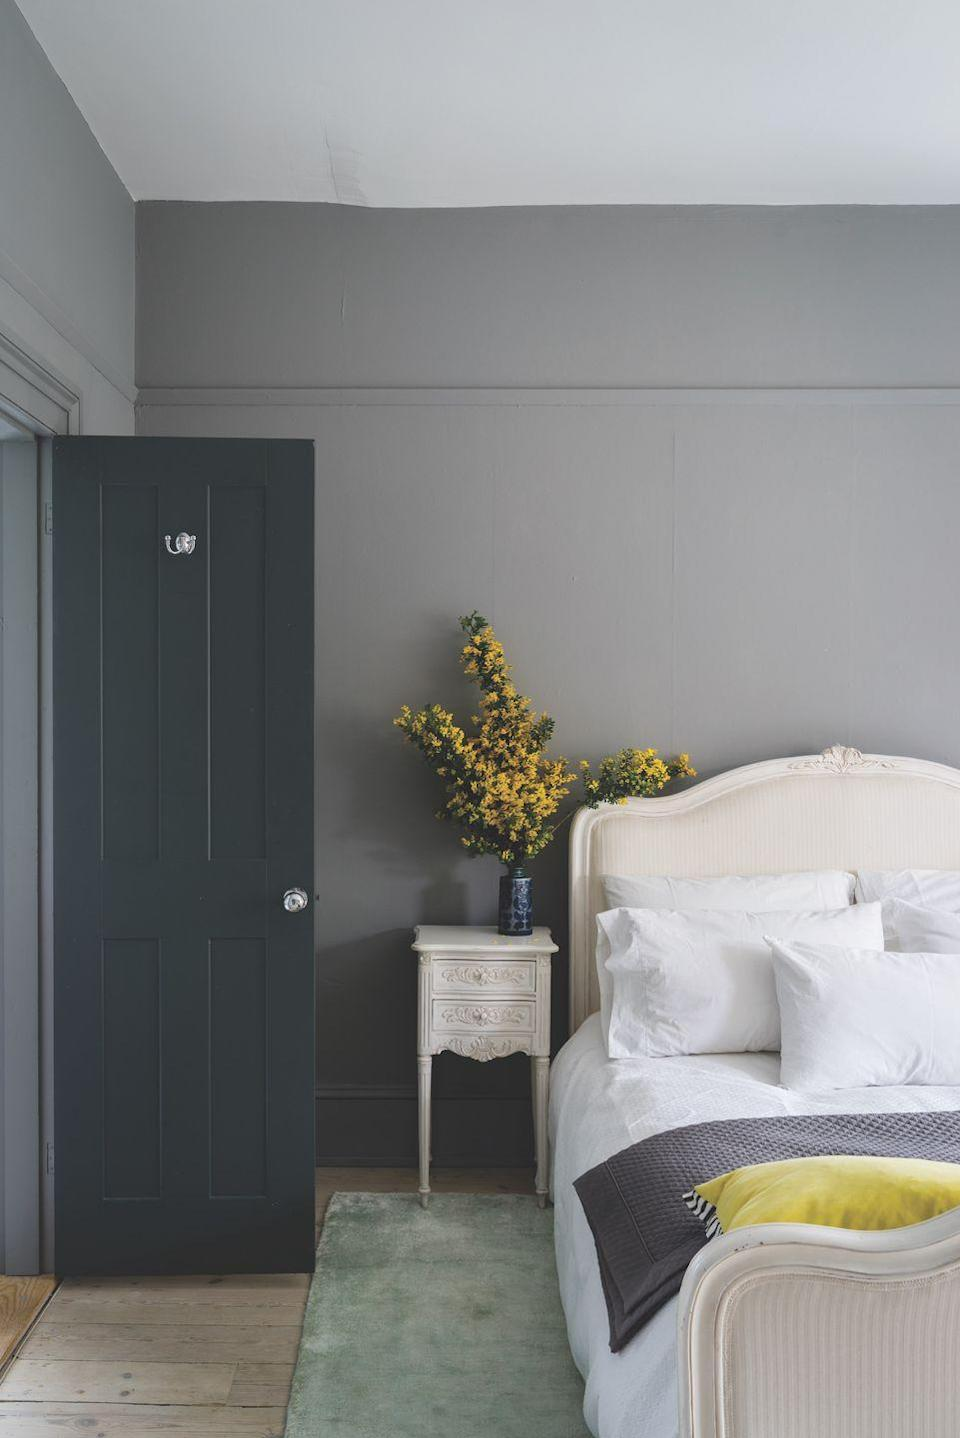 """<p>In a bedroom, go for a strong architectural grey, like Plummett, which offers an industrial, modern feel and intensifies in colour in smaller spaces. White bedding creates a crisp contrast, while yellow accents complements the grey perfectly.</p><p>Pictured: <a href=""""https://go.redirectingat.com?id=127X1599956&url=https%3A%2F%2Fwww.farrow-ball.com%2Fpaint-colours%2Fplummett&sref=https%3A%2F%2Fwww.housebeautiful.com%2Fuk%2Fdecorate%2Fbedroom%2Fg35432015%2Fgrey-bedroom-ideas%2F"""" rel=""""nofollow noopener"""" target=""""_blank"""" data-ylk=""""slk:Plummett No.272, Farrow & Ball"""" class=""""link rapid-noclick-resp"""">Plummett No.272, Farrow & Ball</a></p>"""